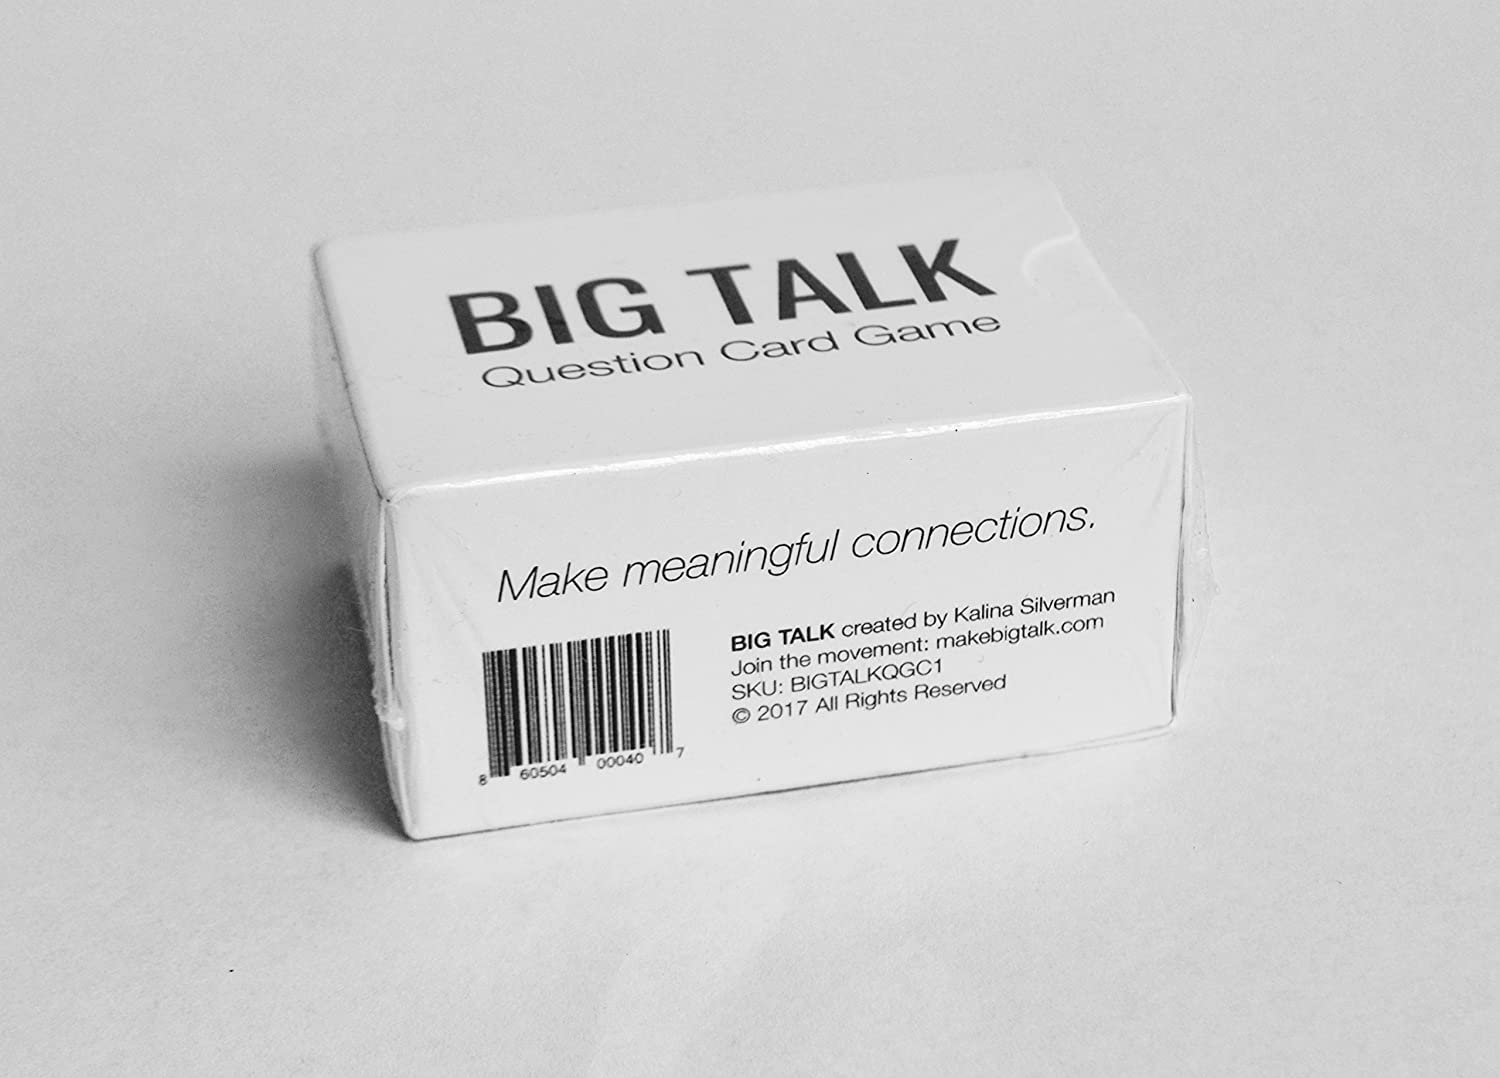 Amazon.com: BIG TALK Question Card Game: Skip Small Talk, Make Meaningful  Connections - Unique Conversation Starters, Fun Party Icebreaker Activity,  ...